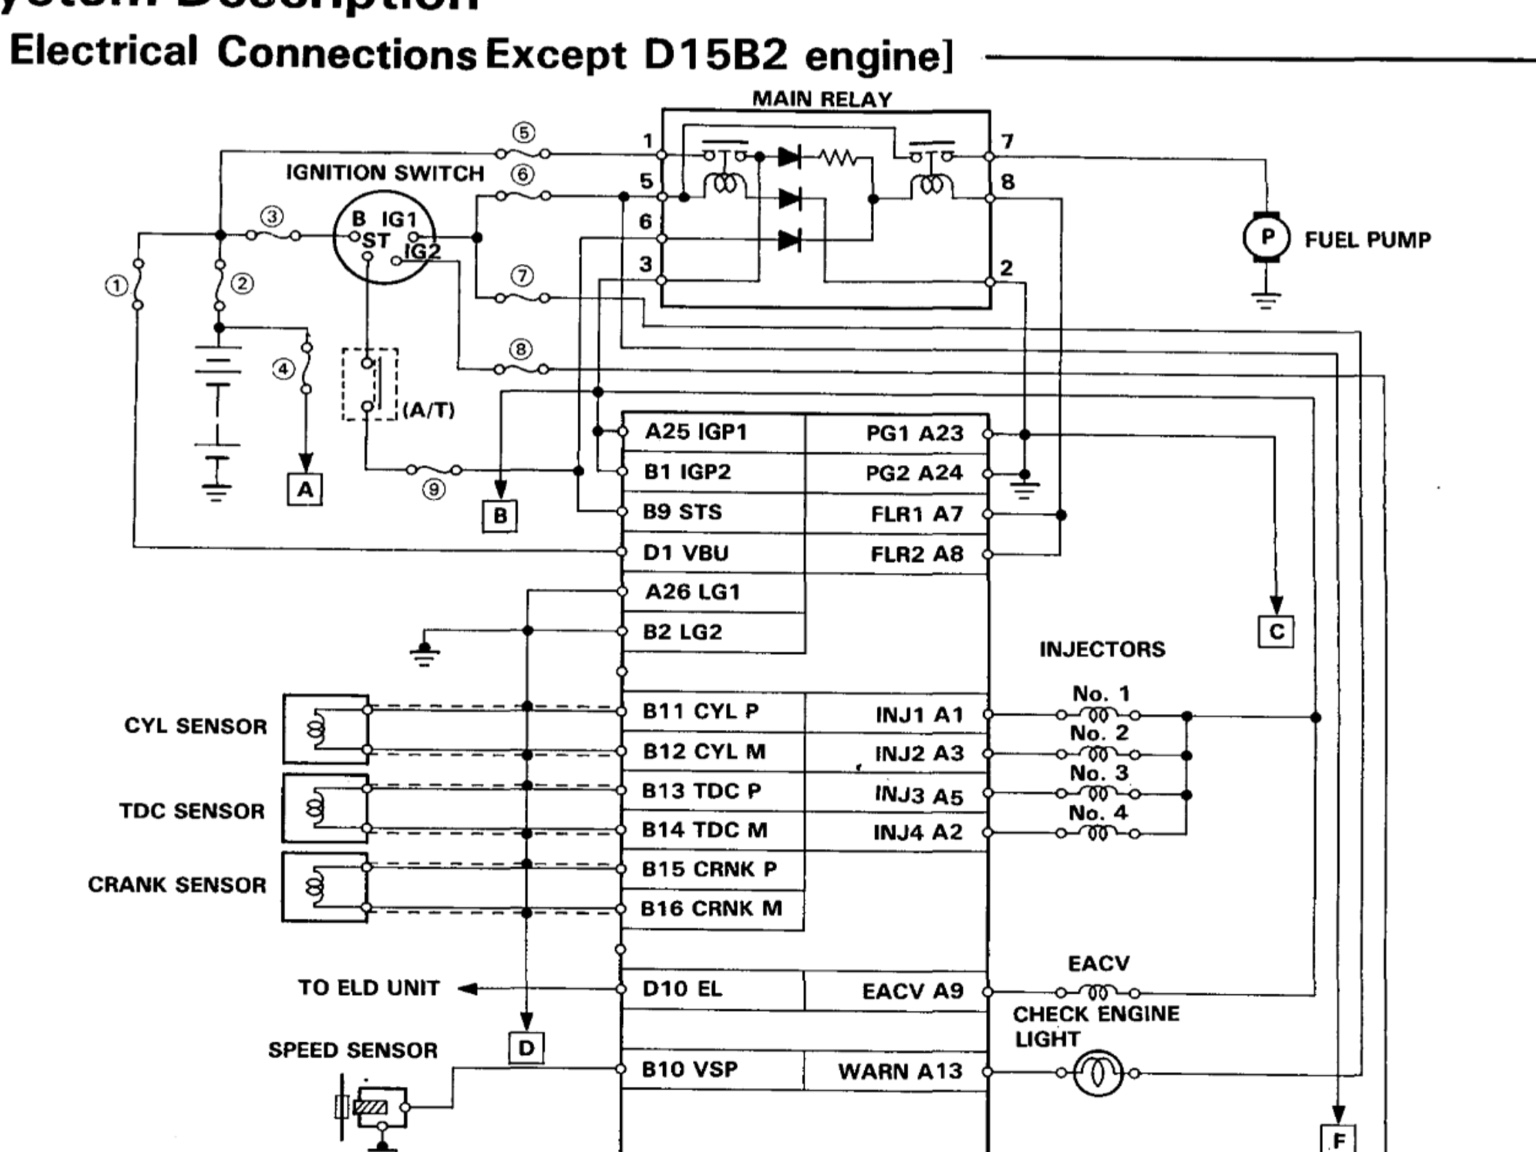 ✦DIAGRAM BASED✦ Honda B16a Wiring Diagram COMPLETED DIAGRAM BASE Wiring  Diagram - DUNCAN.FALCONER.TAPEDIAGRAM.PCINFORMI.ITDiagram Based Completed Edition - PcInformi